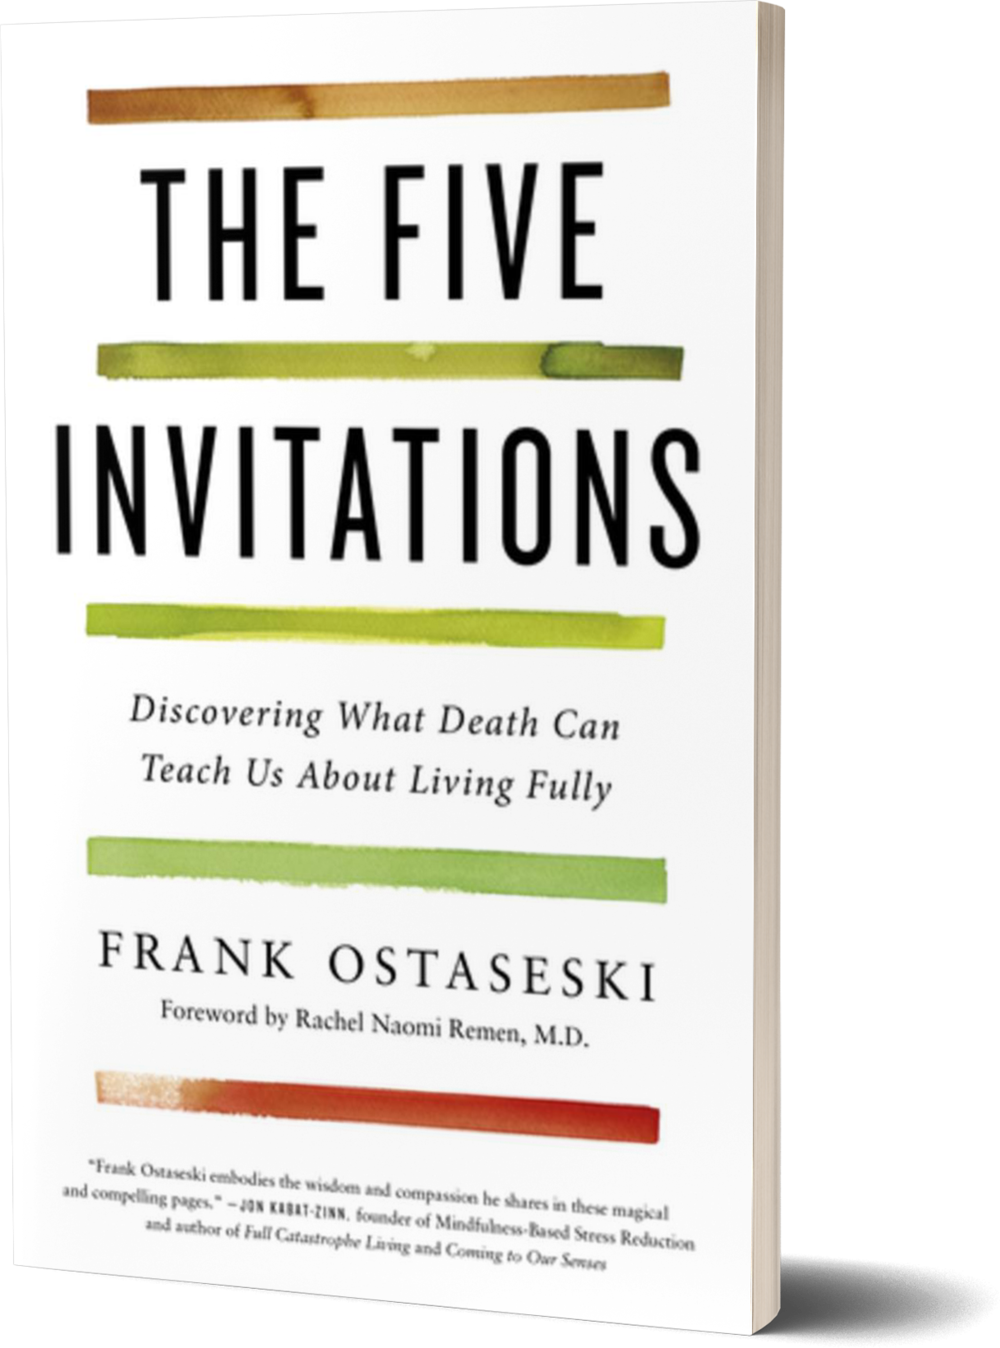 The Five Invitations- Discovering What Death Can Teach Us About Living Fully by Frank Ostaseski.png